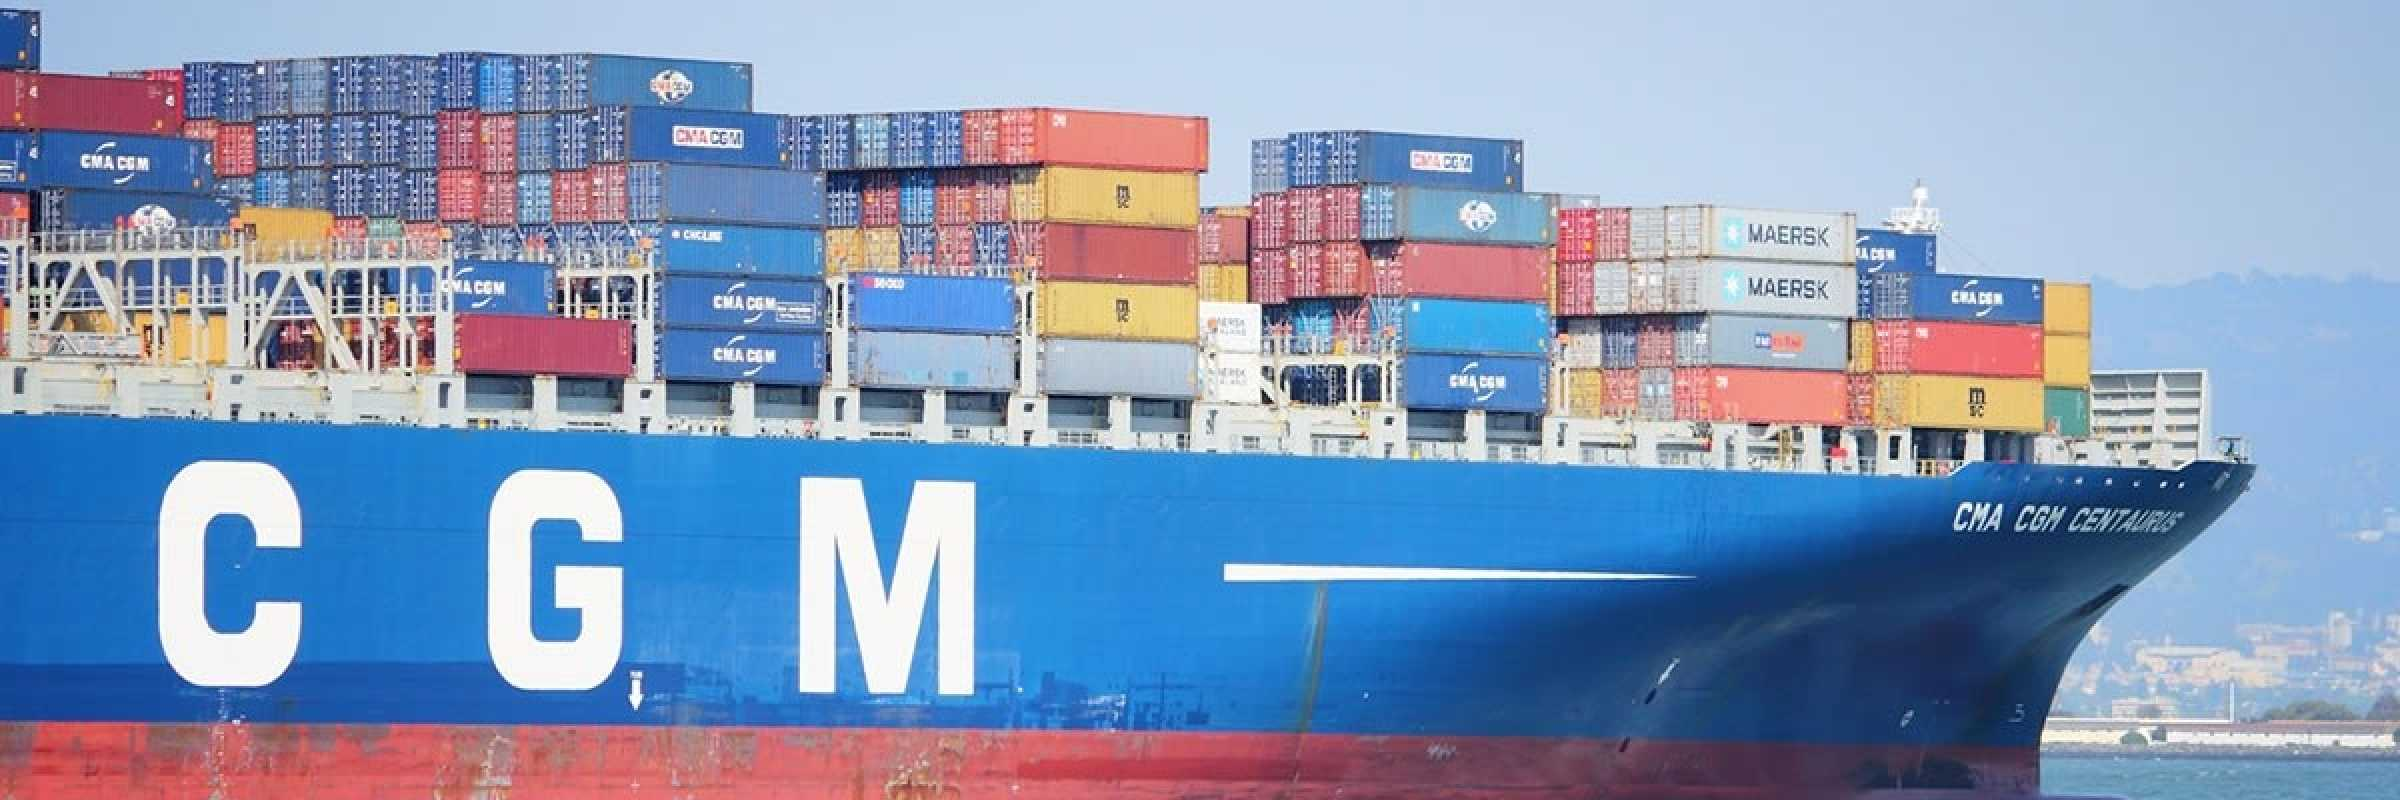 CMA CGM to install Bio-Sea BWMS for 17 containerships